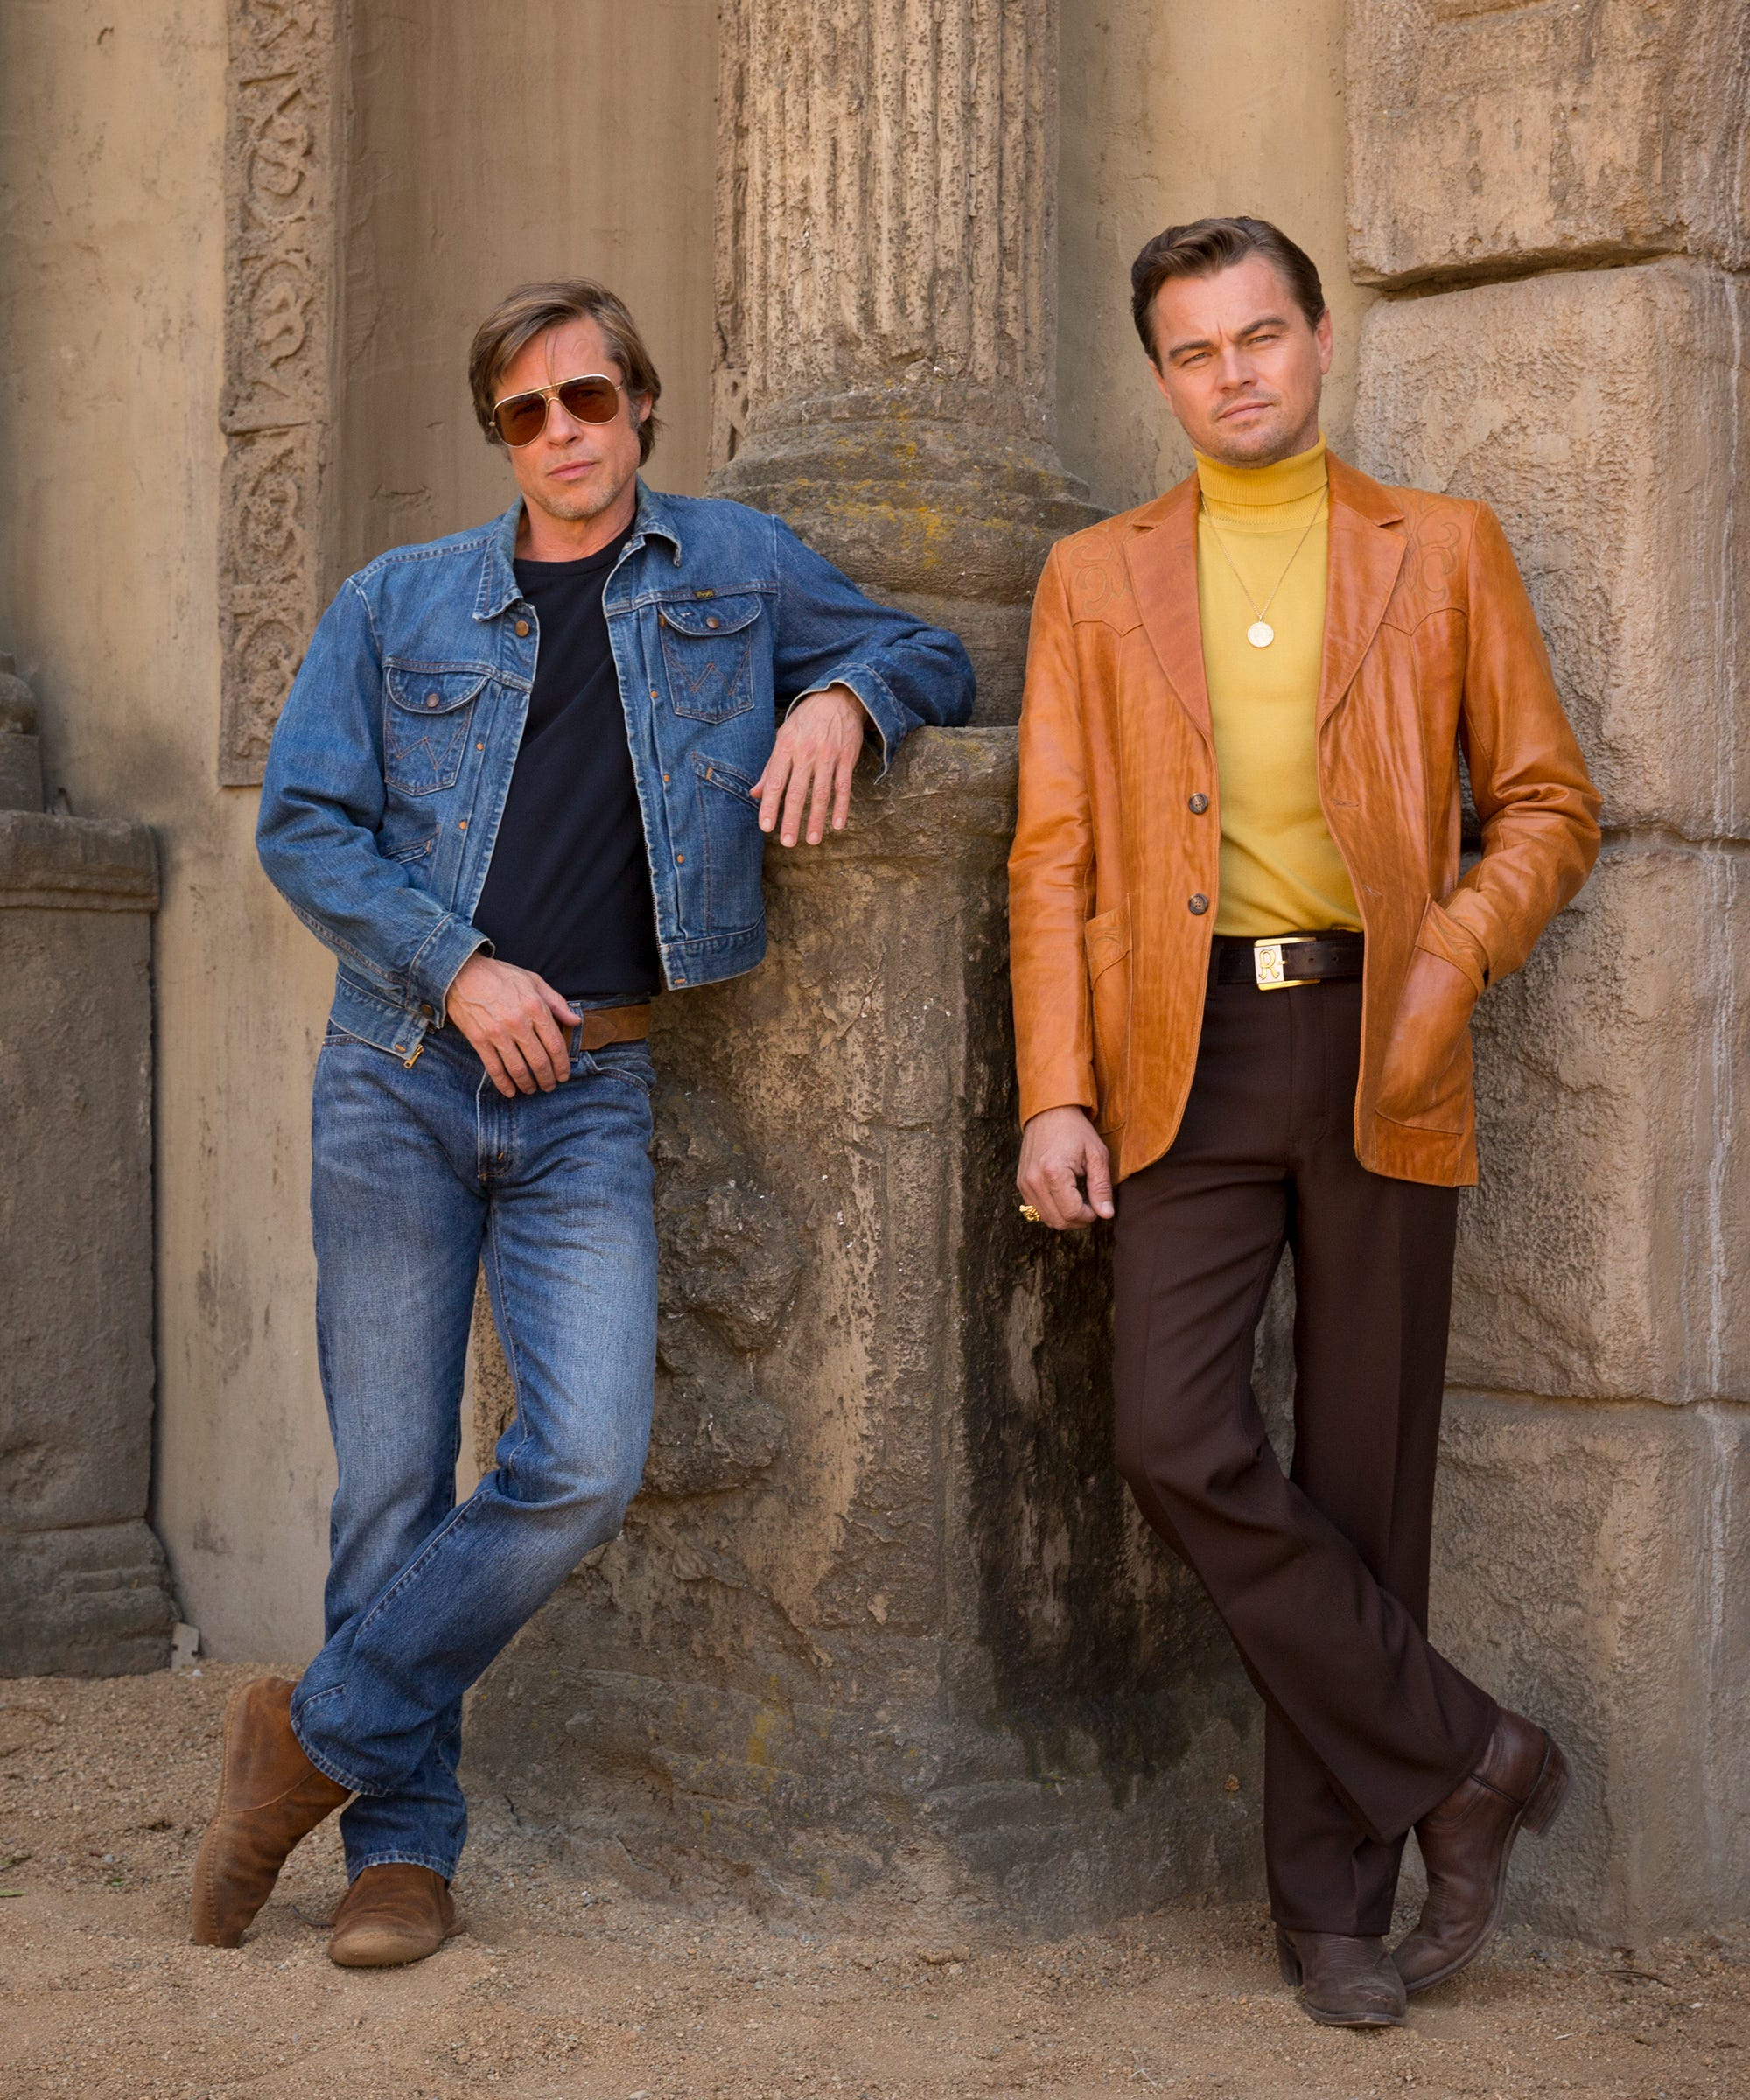 Brad Pitt & Leonardo DiCaprio Deserve Better Than This Cheesy Once Upon A Time In Hollywood Poster